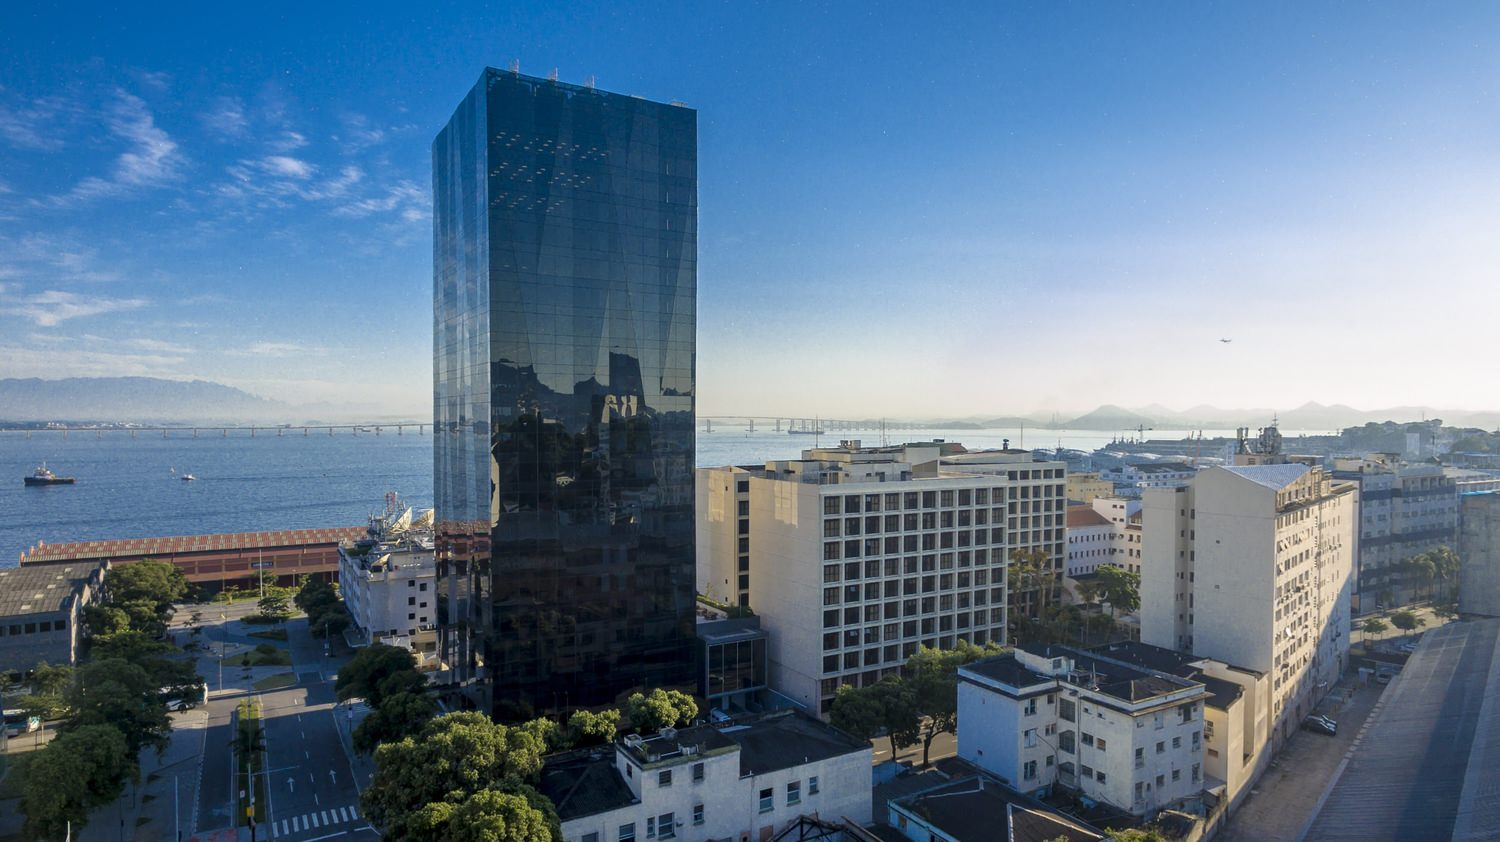 A tall building with black tinted windows the middle of a city that is near a body of water.